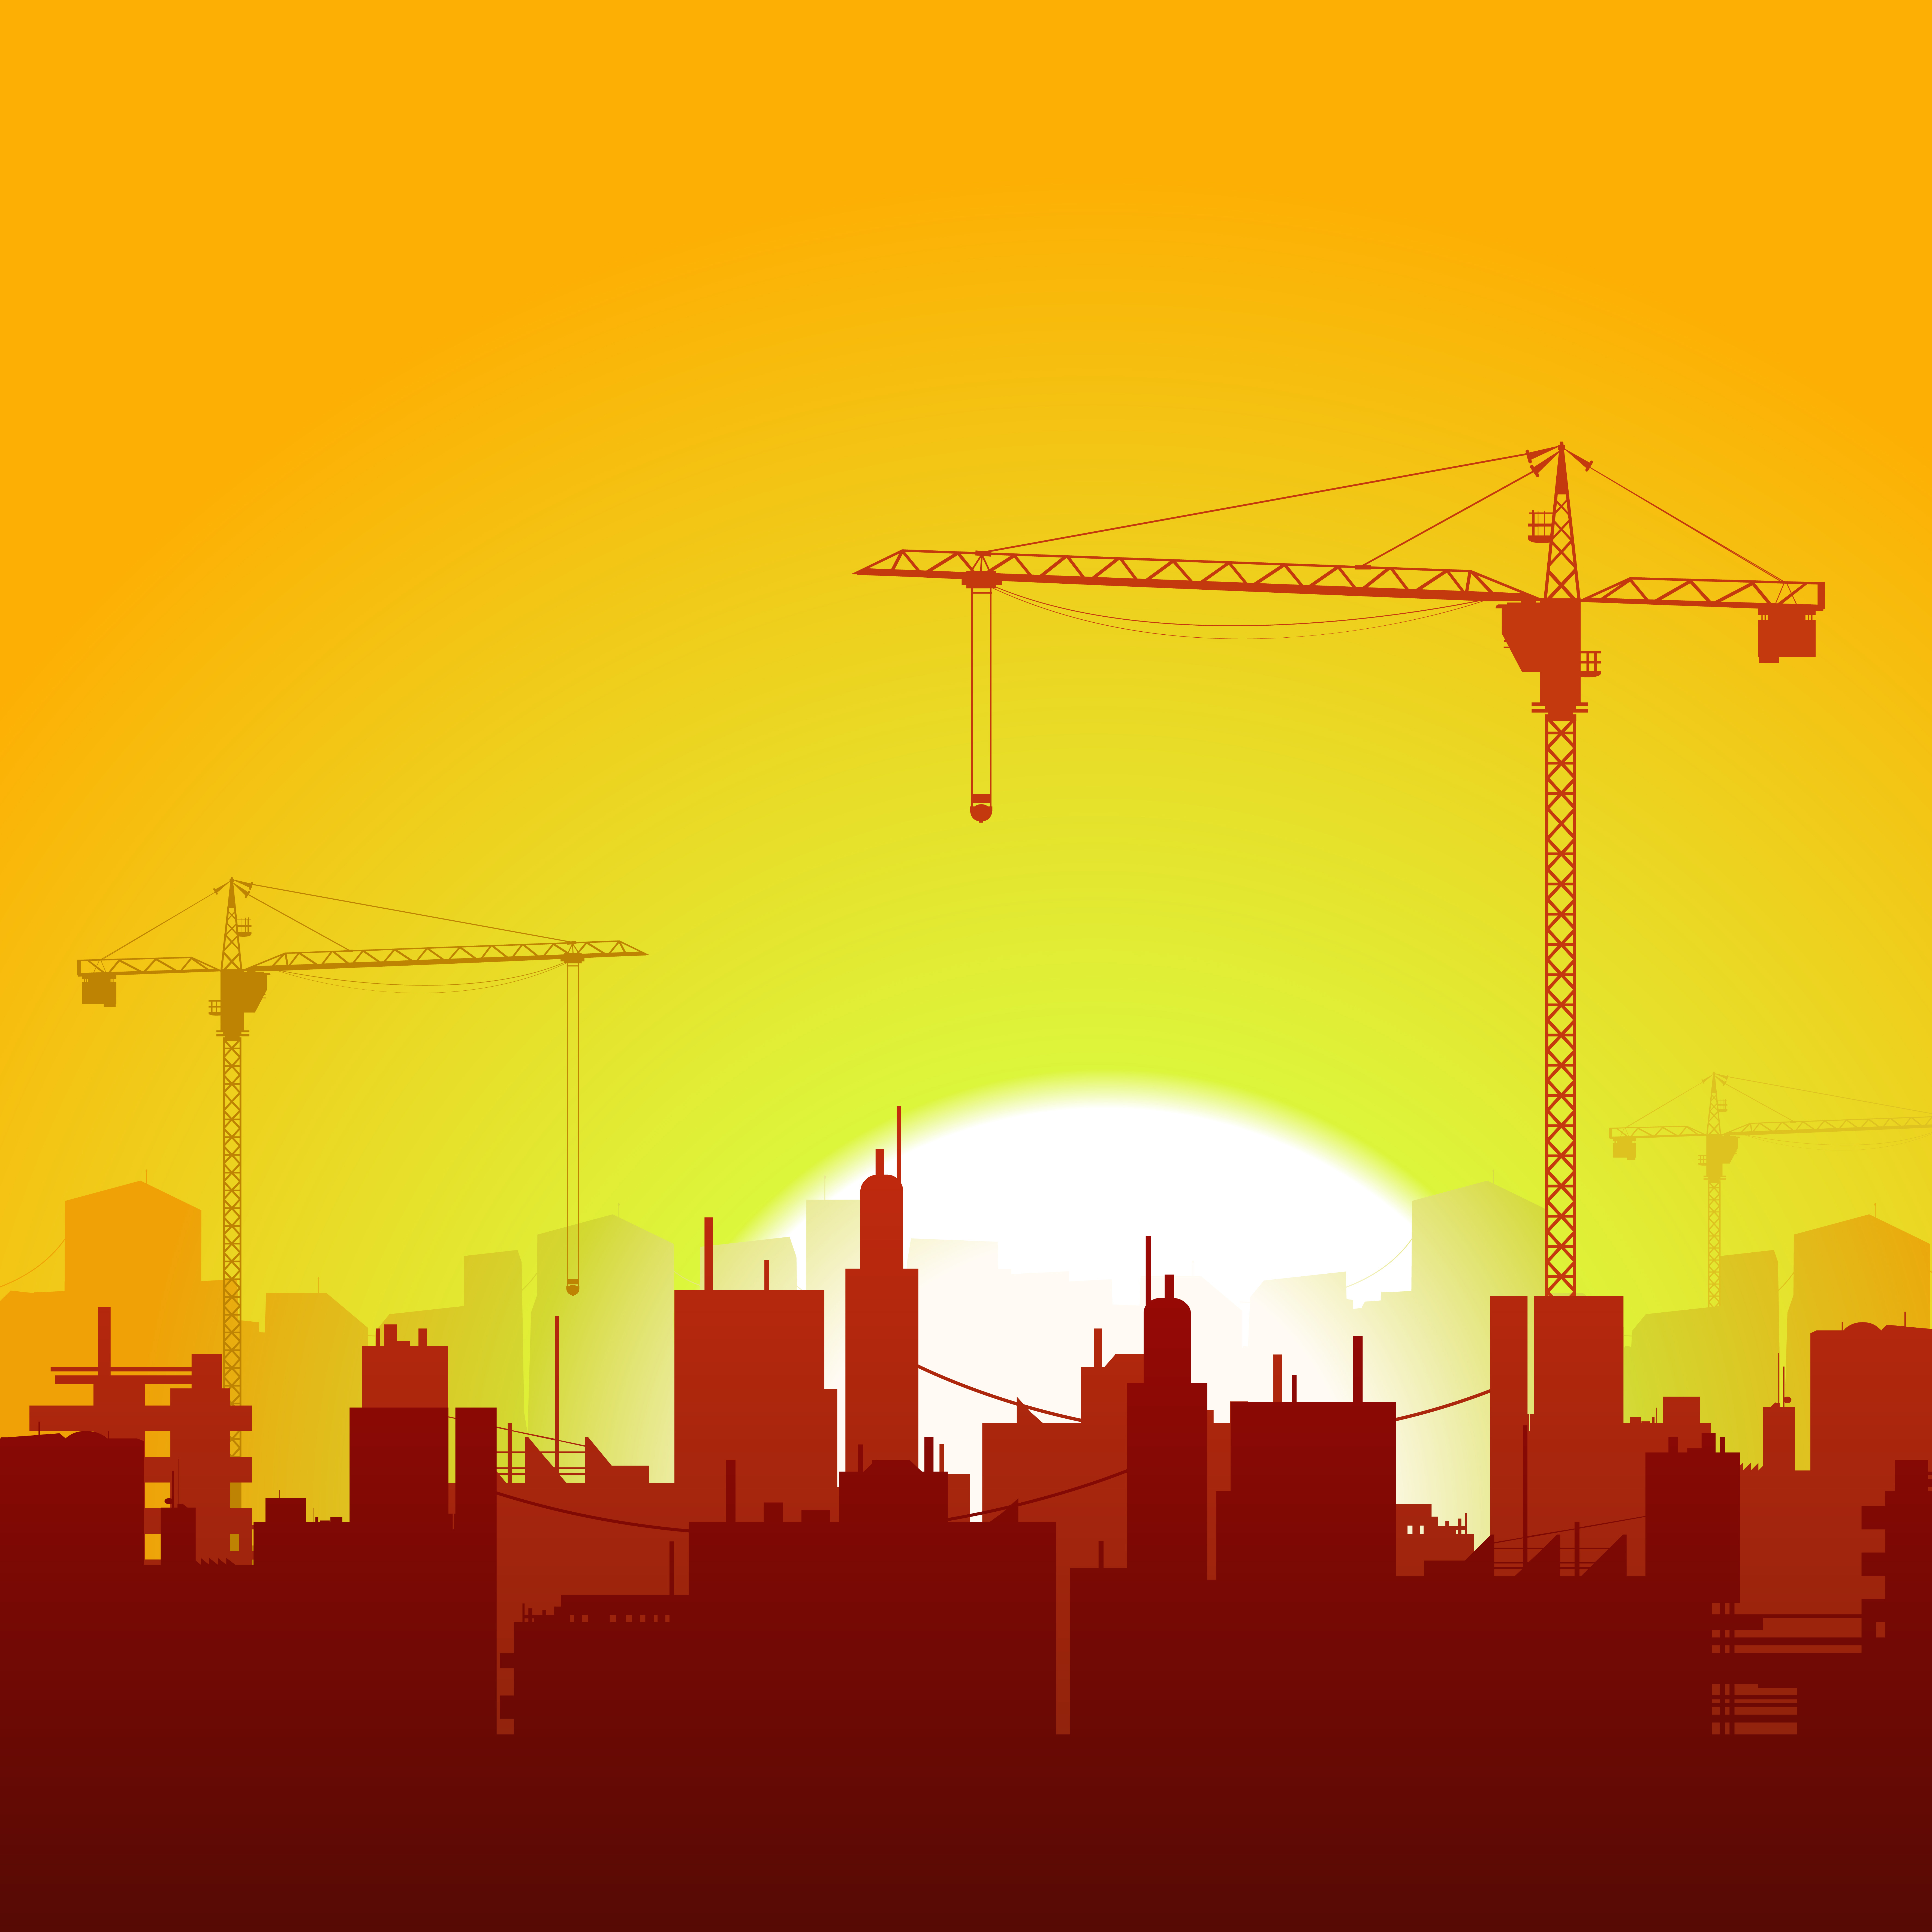 Sunrise Cranes And Construction Background - Download Free ...